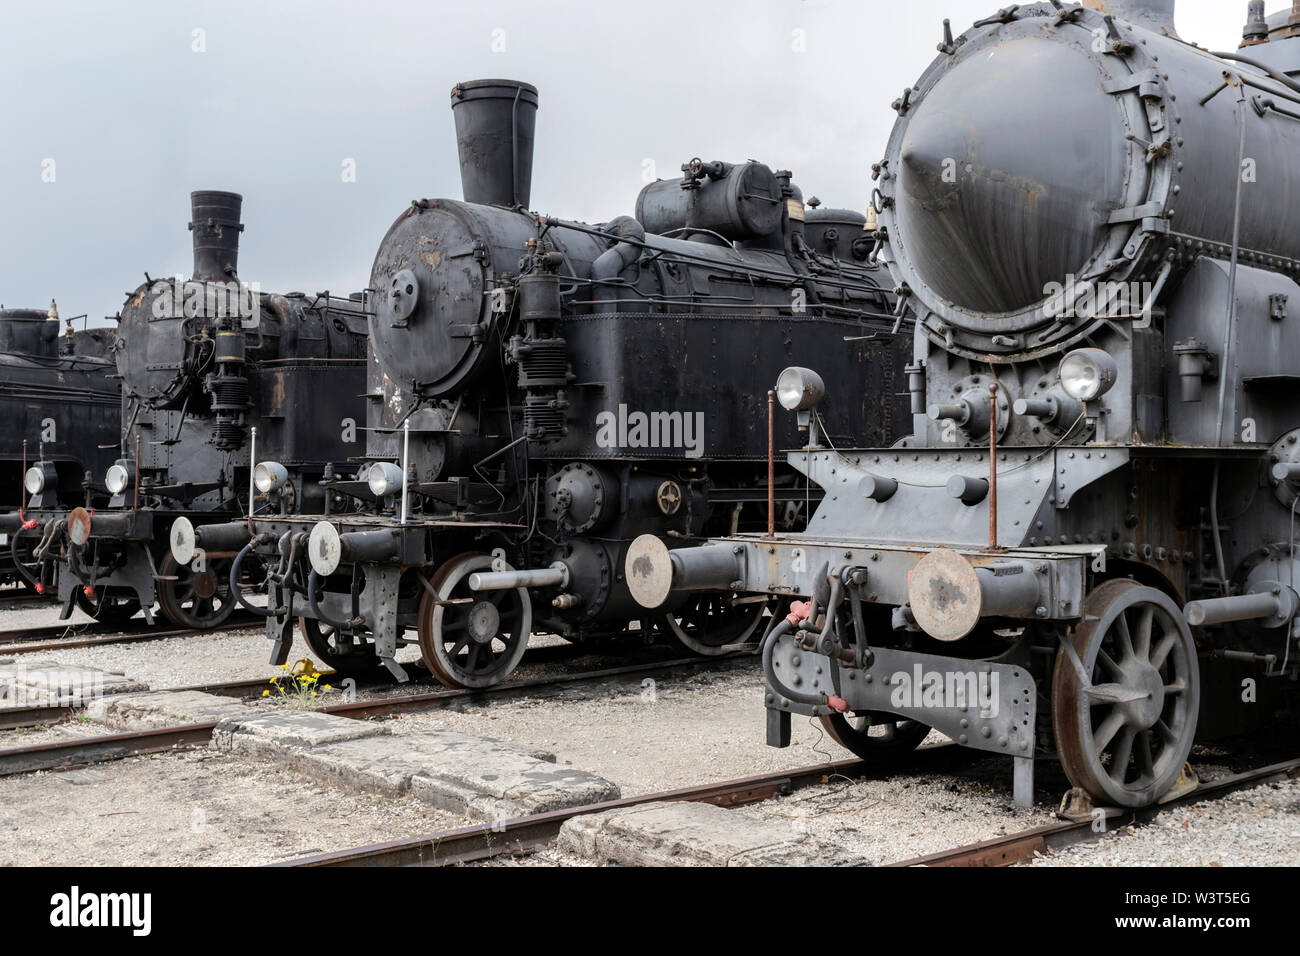 BUDAPEST, HUNGARY - April 05, 2019: Historic steam locomotives on display at the Hungarian Railway Museum. Stock Photo